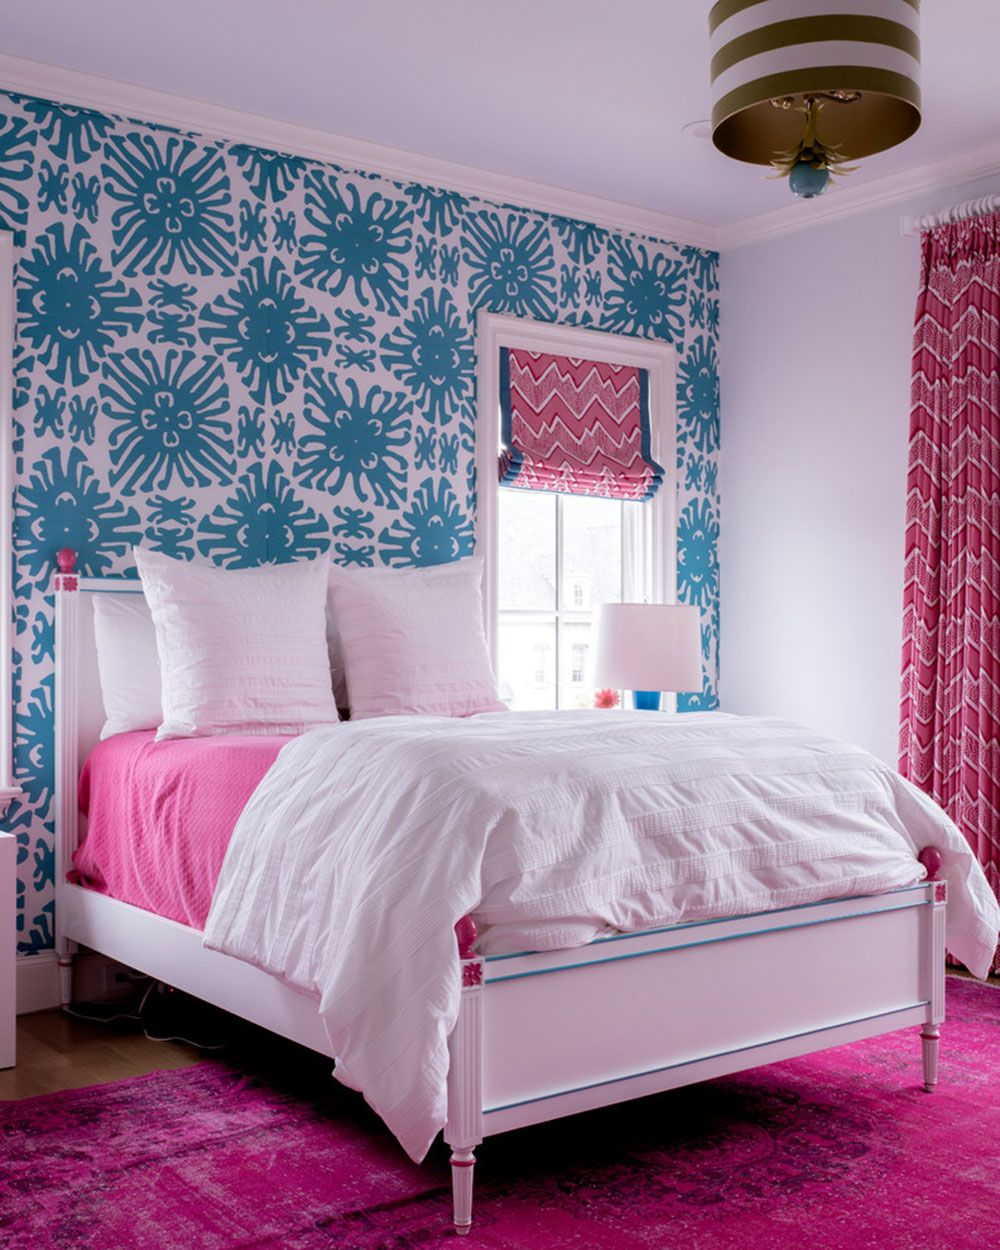 What colors go with blue? Blue paint ideas for your ...